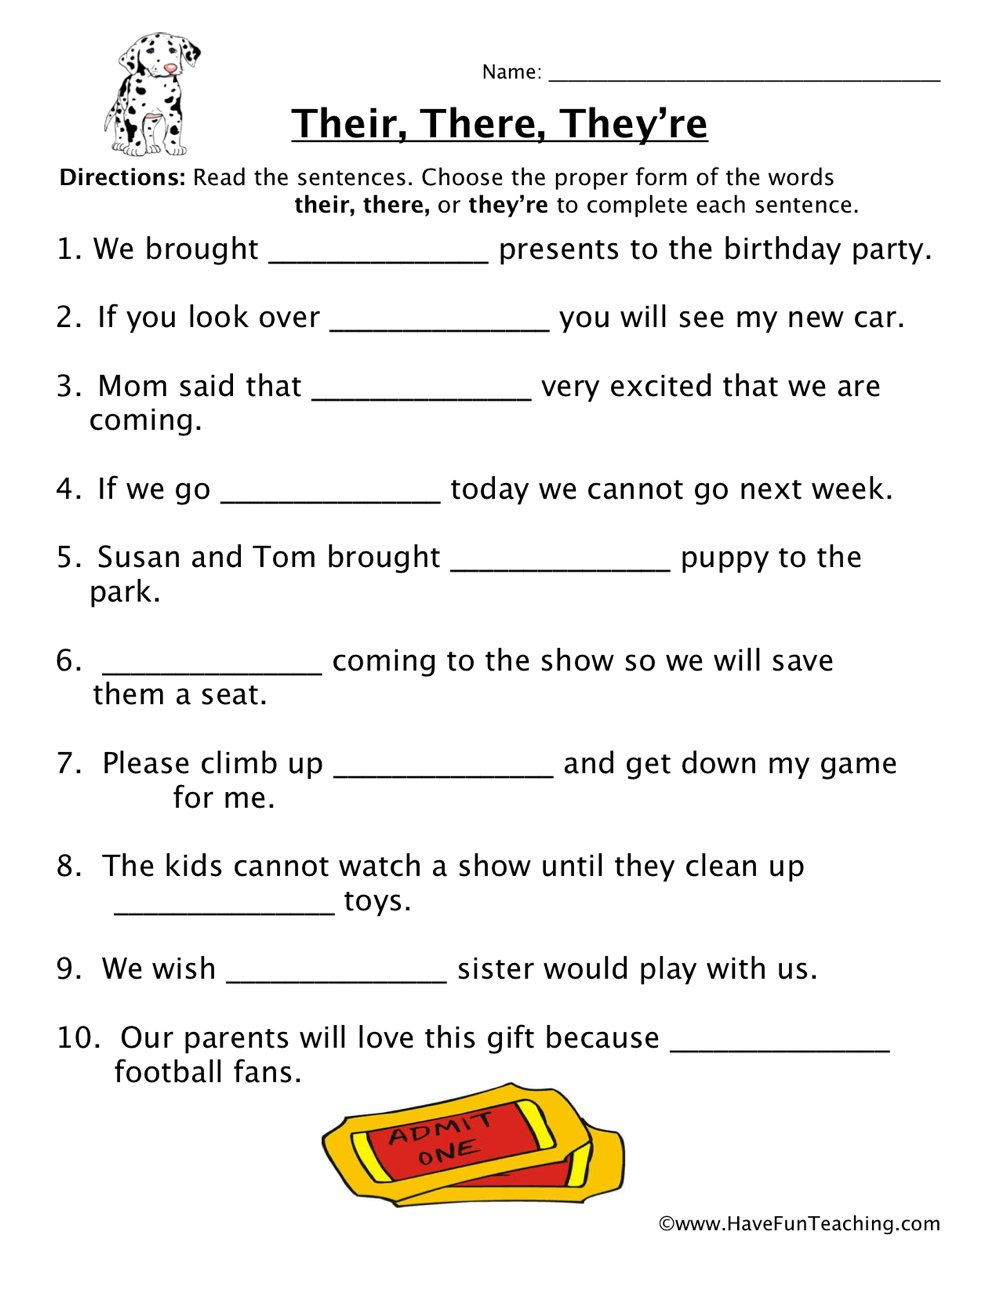 Homophone Worksheet - Their, There, They're